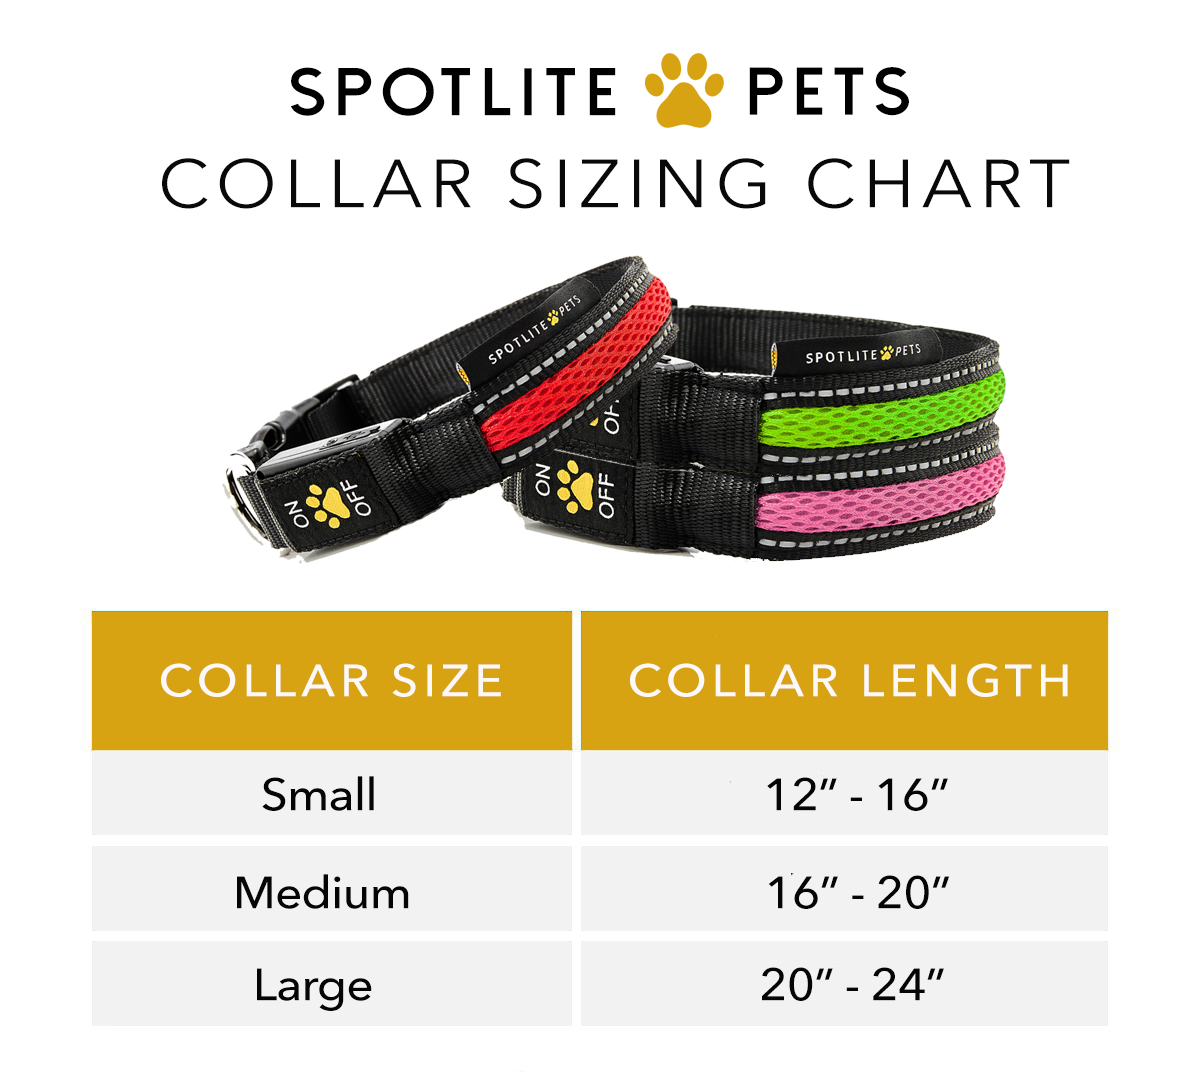 COLLAR SIZE CHART2 revised.png